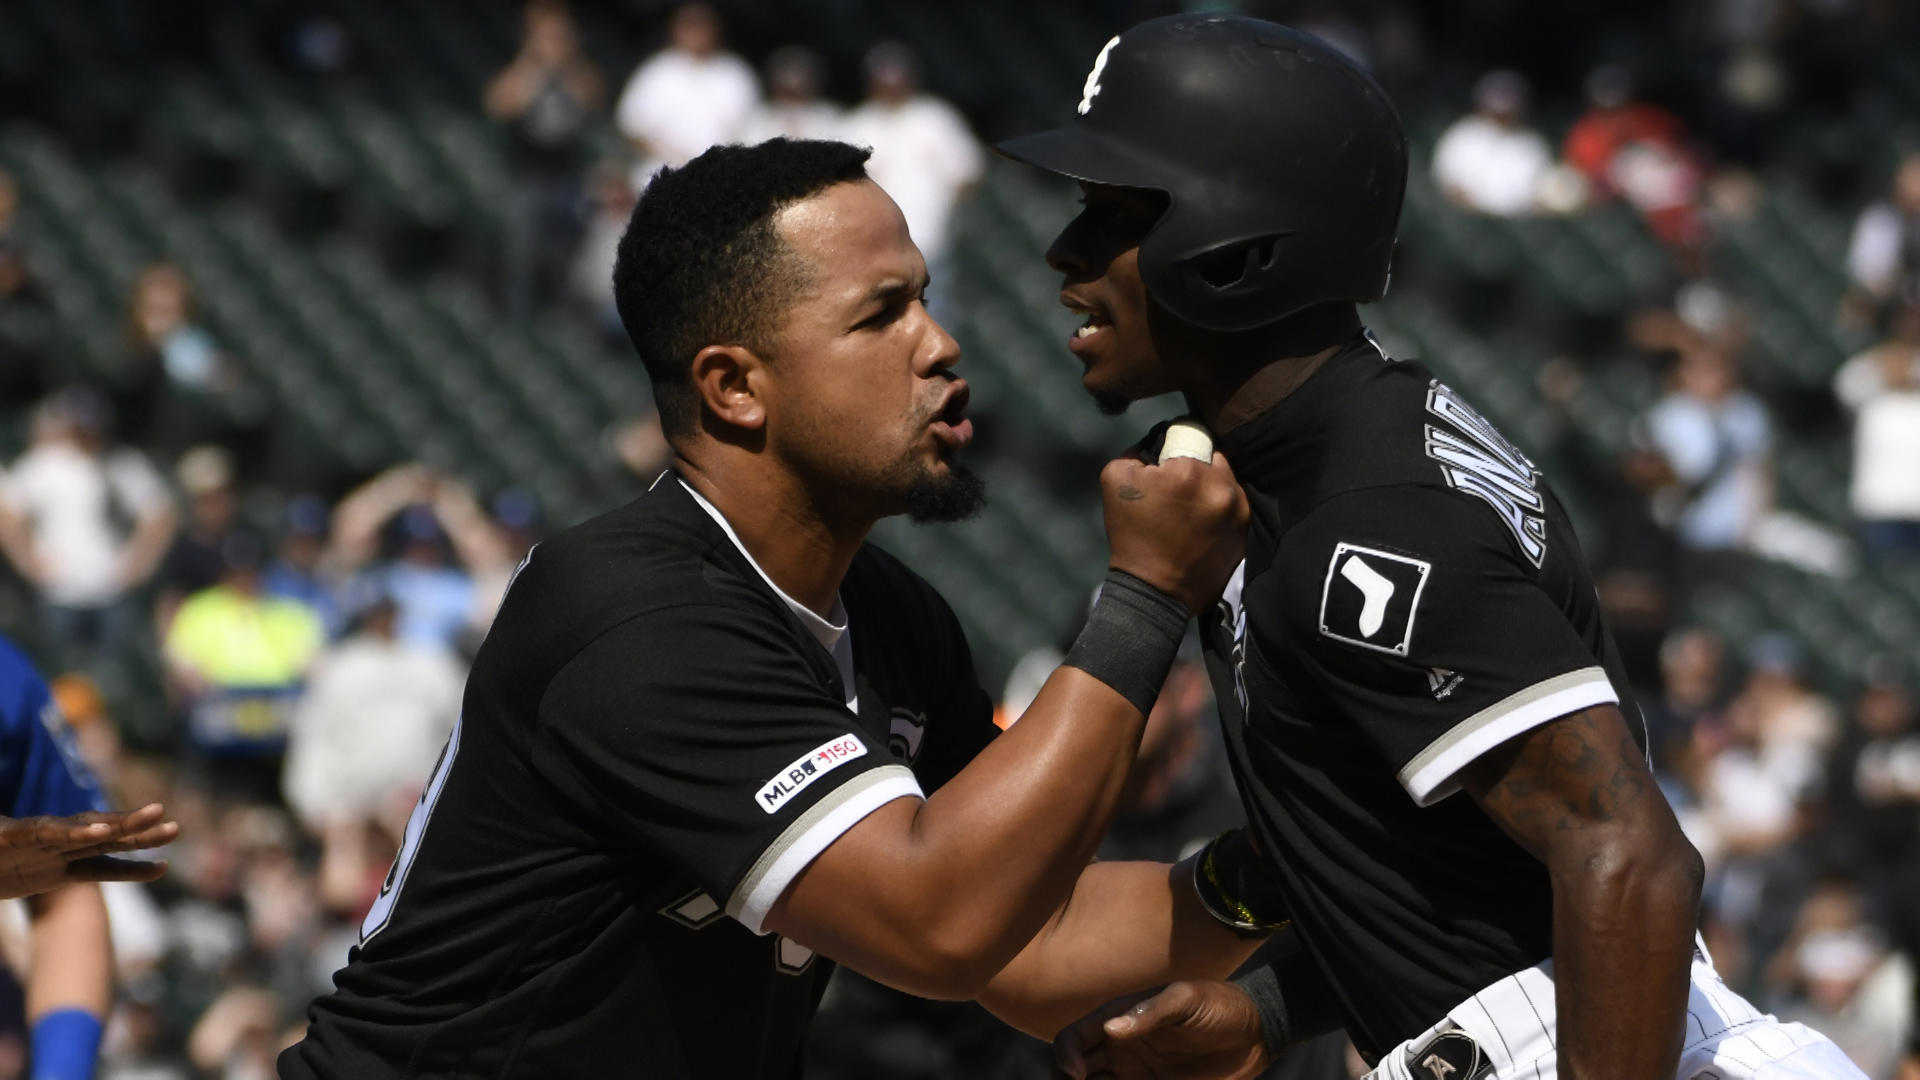 MLB scores: Benches clear, four ejected in Royals-White Sox scuffle; Gardner's grand slam lifts New York over Boston